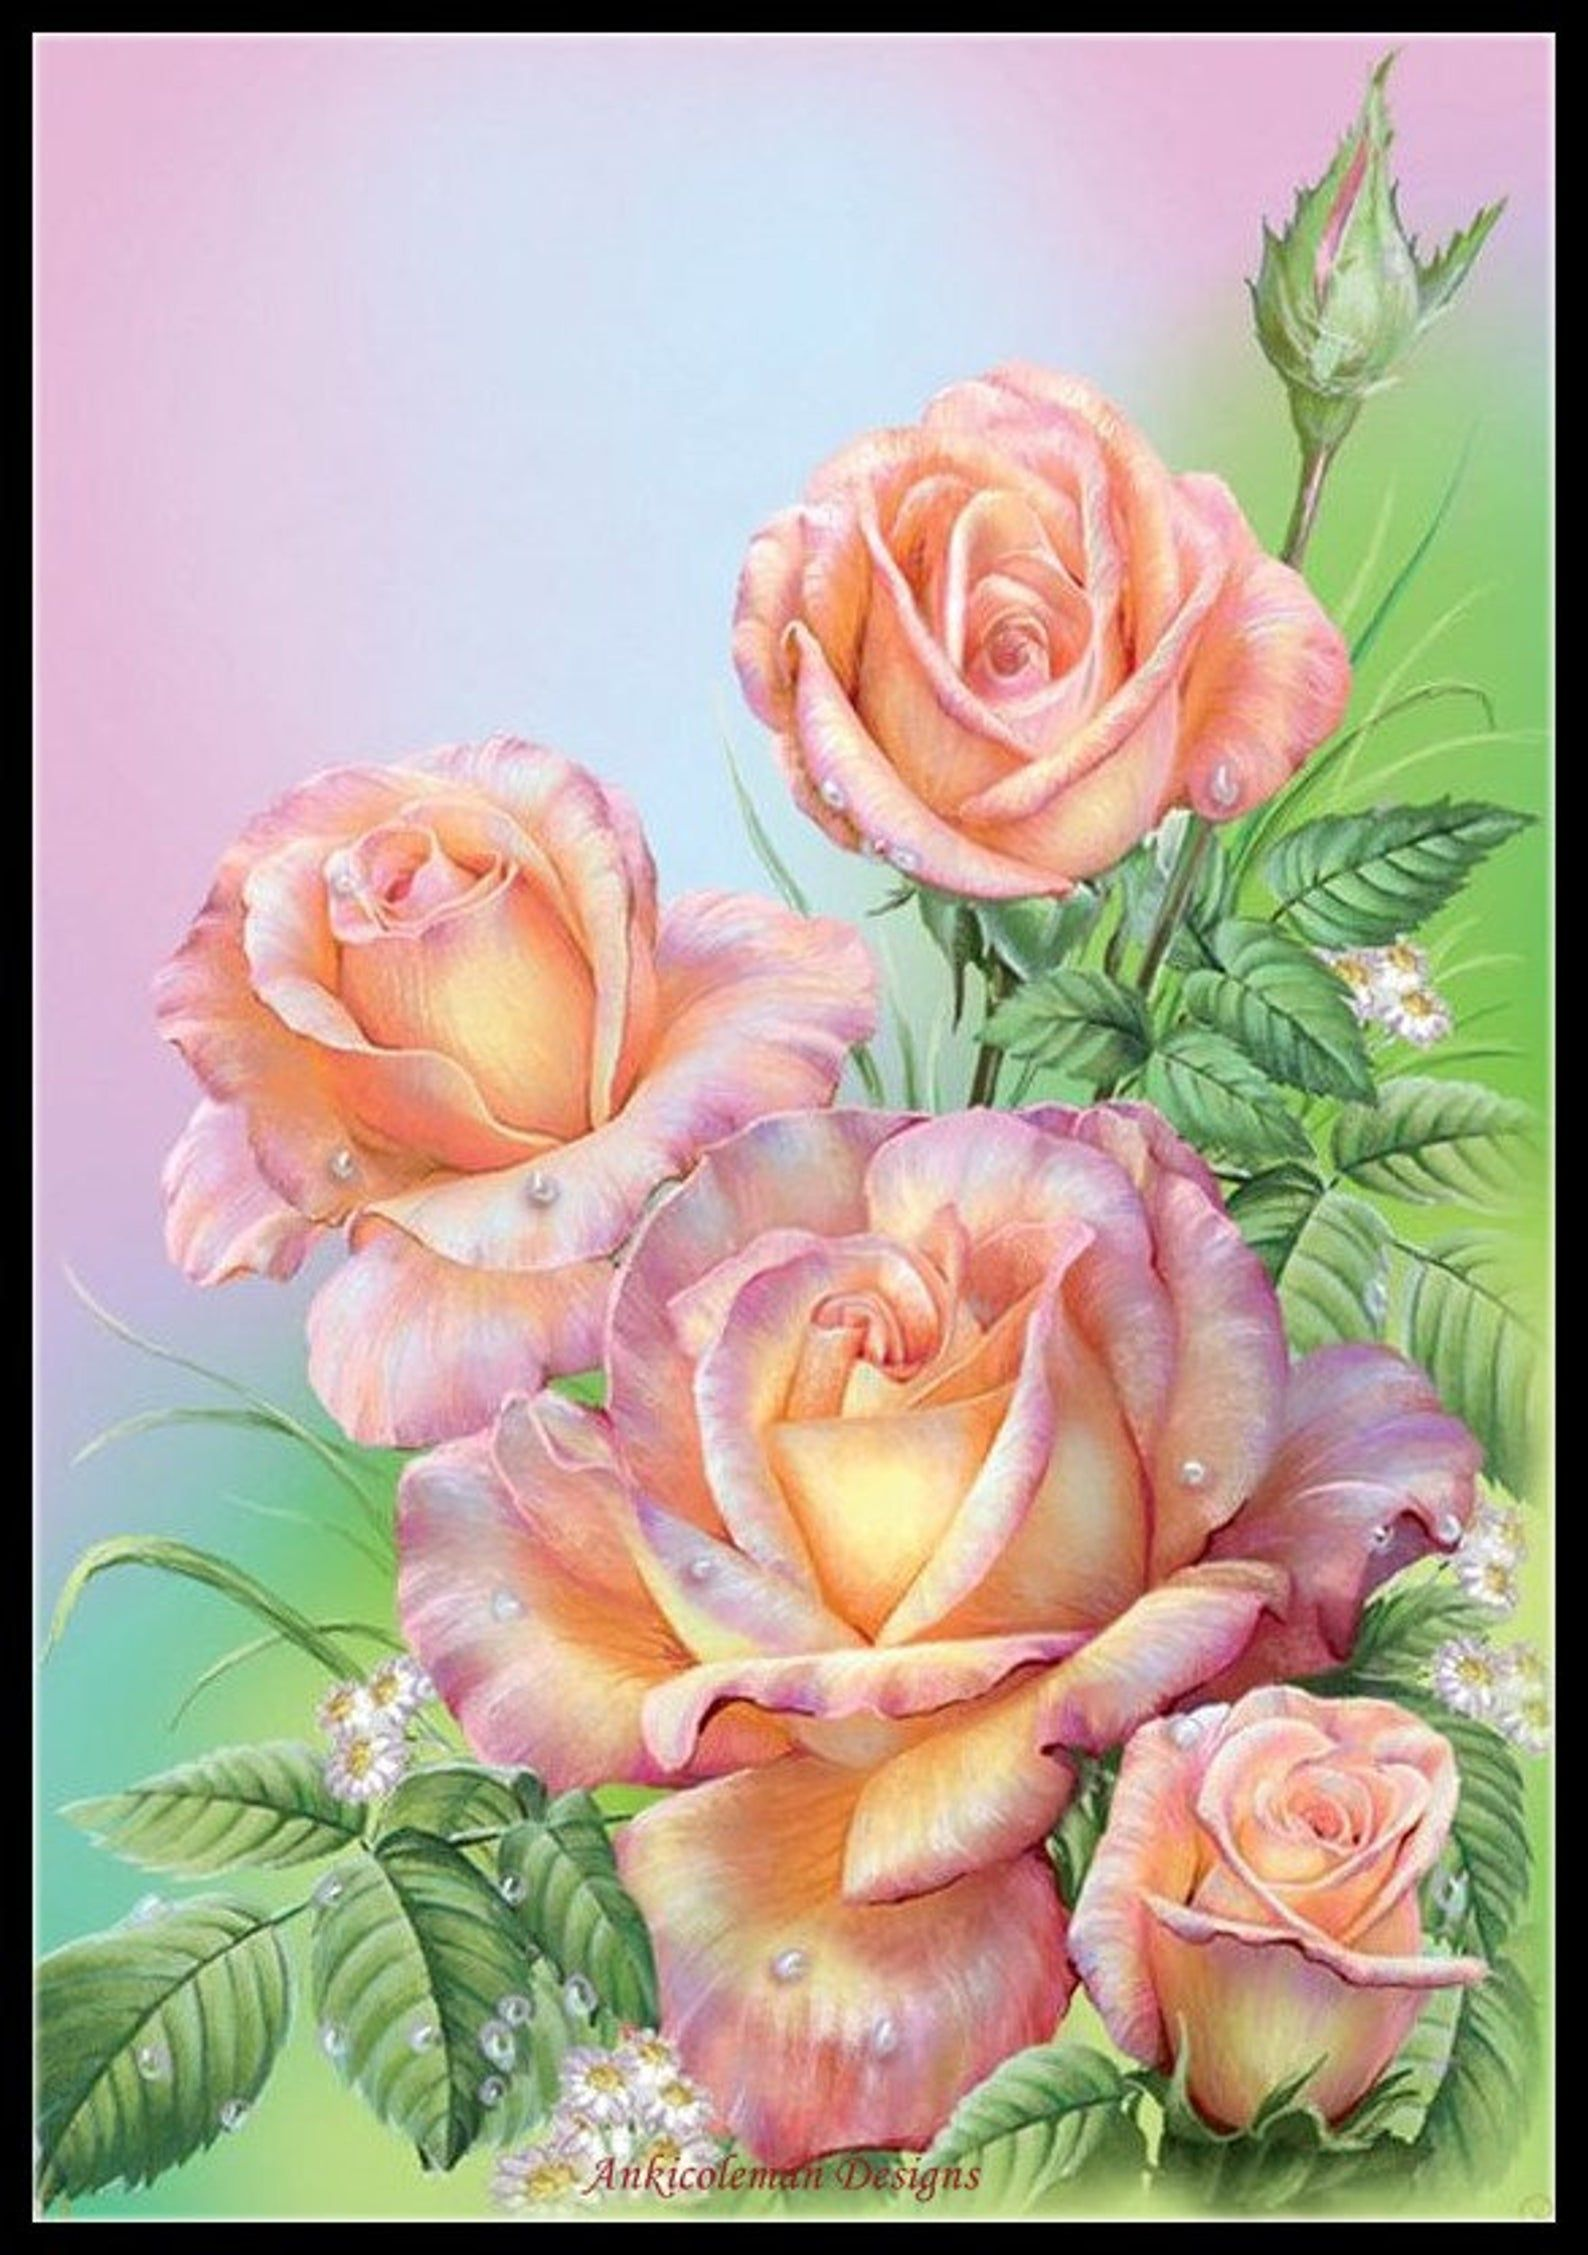 Waterdrop Pink Roses Counted Cross Stitch Patterns Printable Chart Pdf Format Needlework Embroidery Crafts Diy Dmc Color In 2020 Flower Painting Flower Drawing Rose Painting